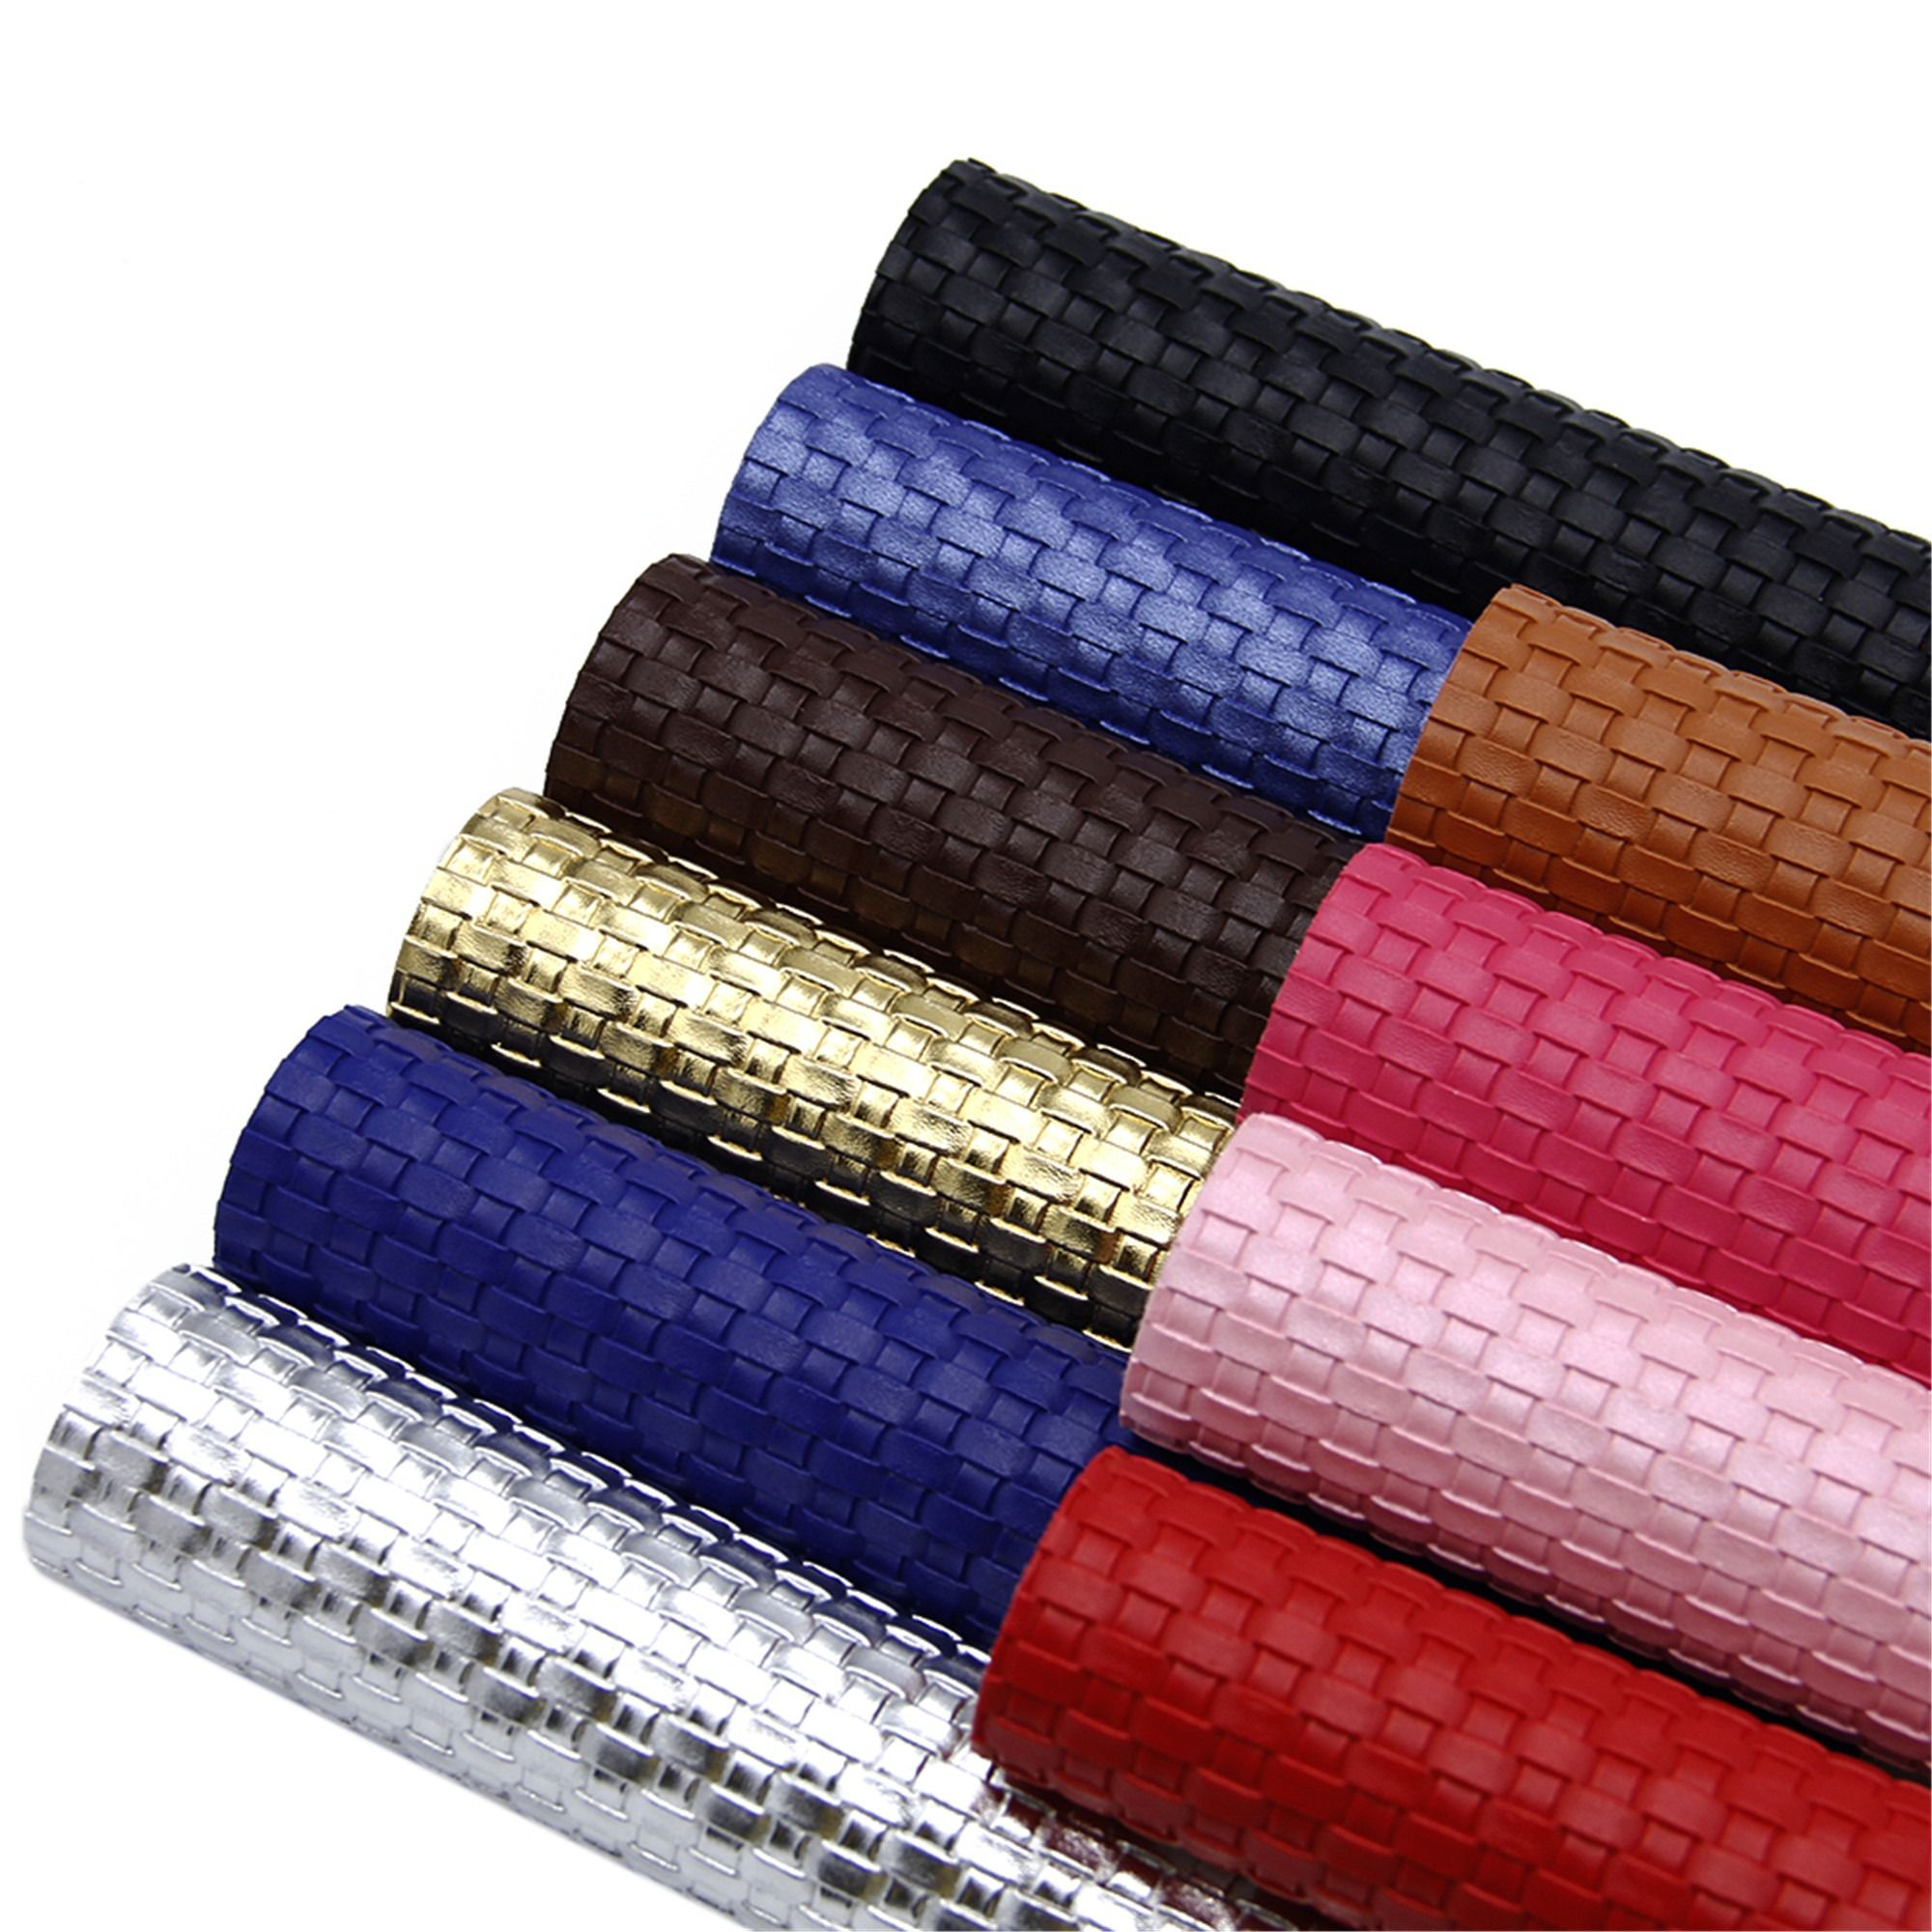 Woven Printed Faux Leather Sheet 10pcs Setbasketweave Etsy Pleather Fabric Leather Sheets Diy Hair Bows